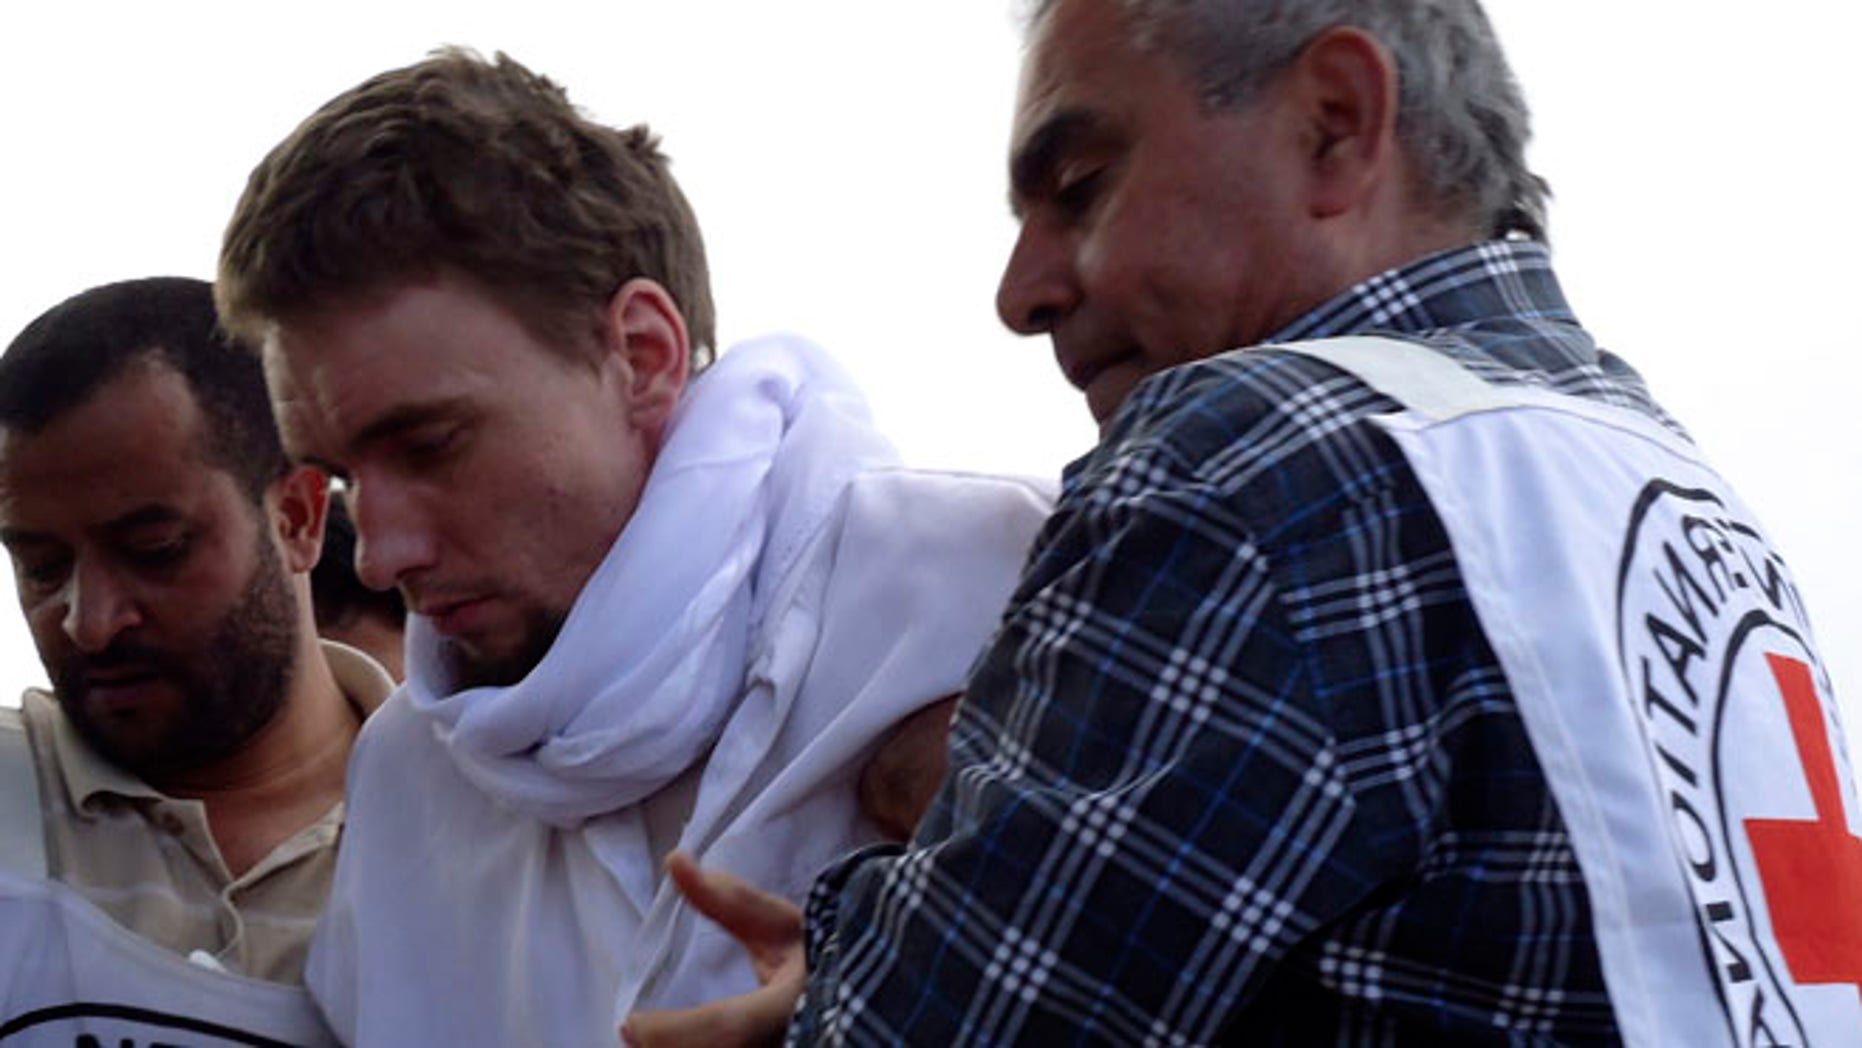 FILE: Nov. 14, 2013: Red Cross medics help a man wounded in fighting at the Saada airport in Yemen, where instability has already helped Al Qaeda militants to take root.